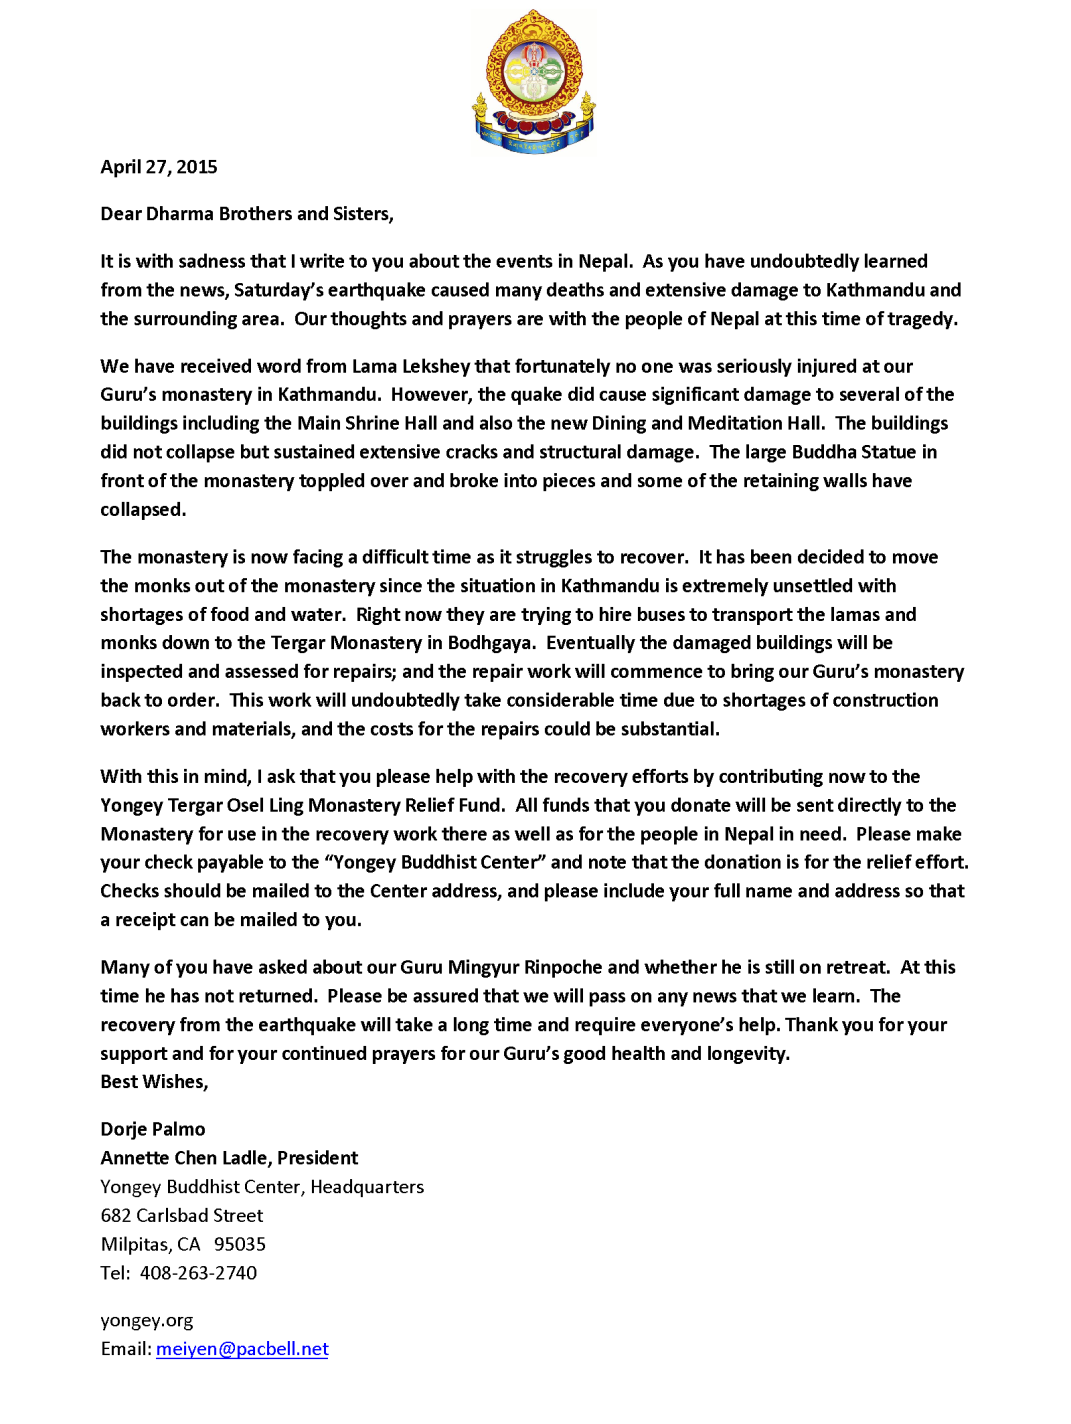 President Letter - Earthquake  (4-27-15)